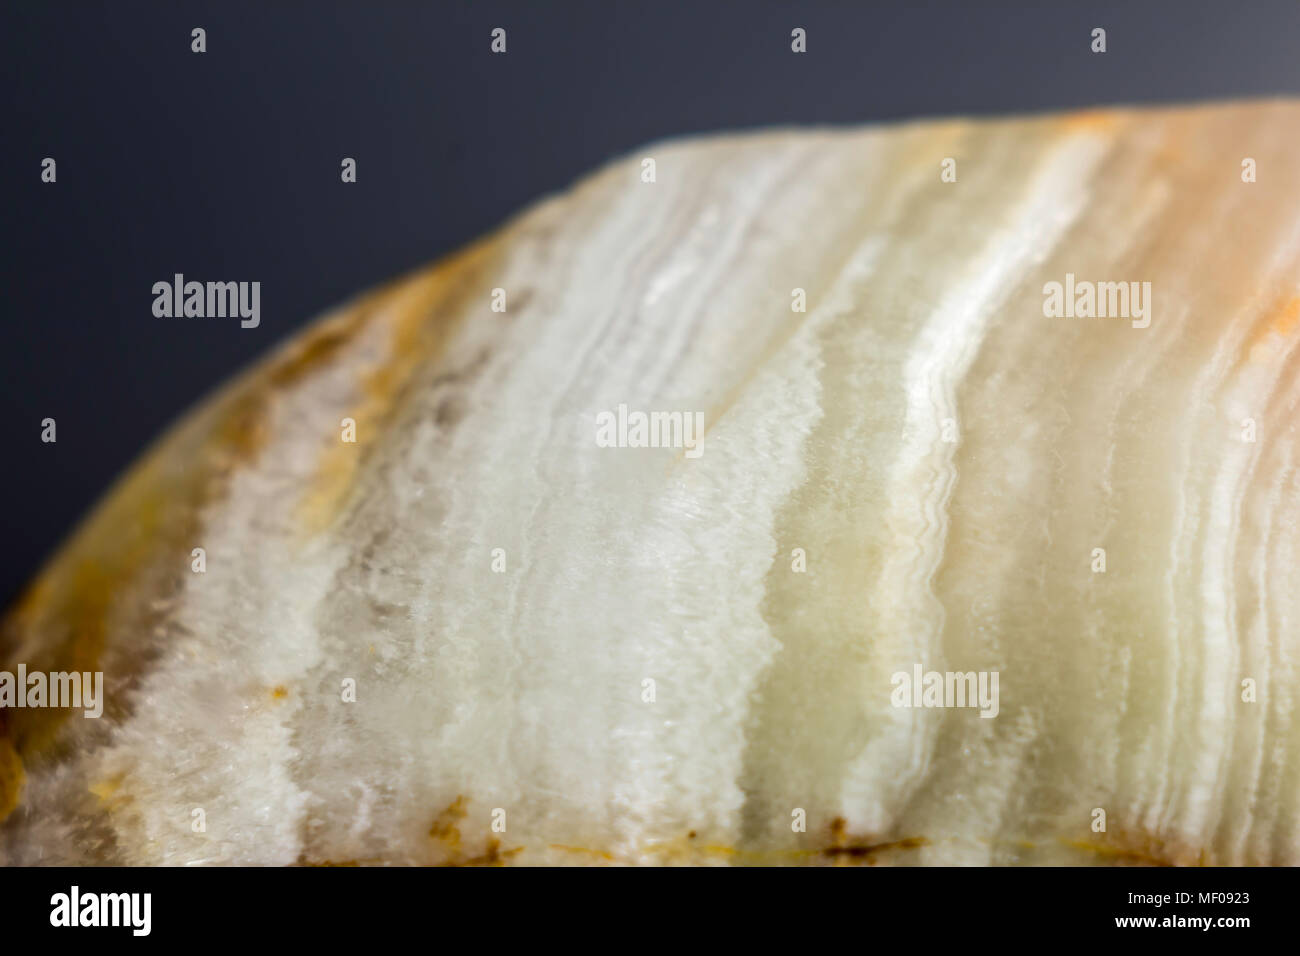 Macro photo texture of polished onyx stone on a gray background. Photo for the site about geology, stones, jewelry, handwork, textures,art, astronomy. - Stock Image